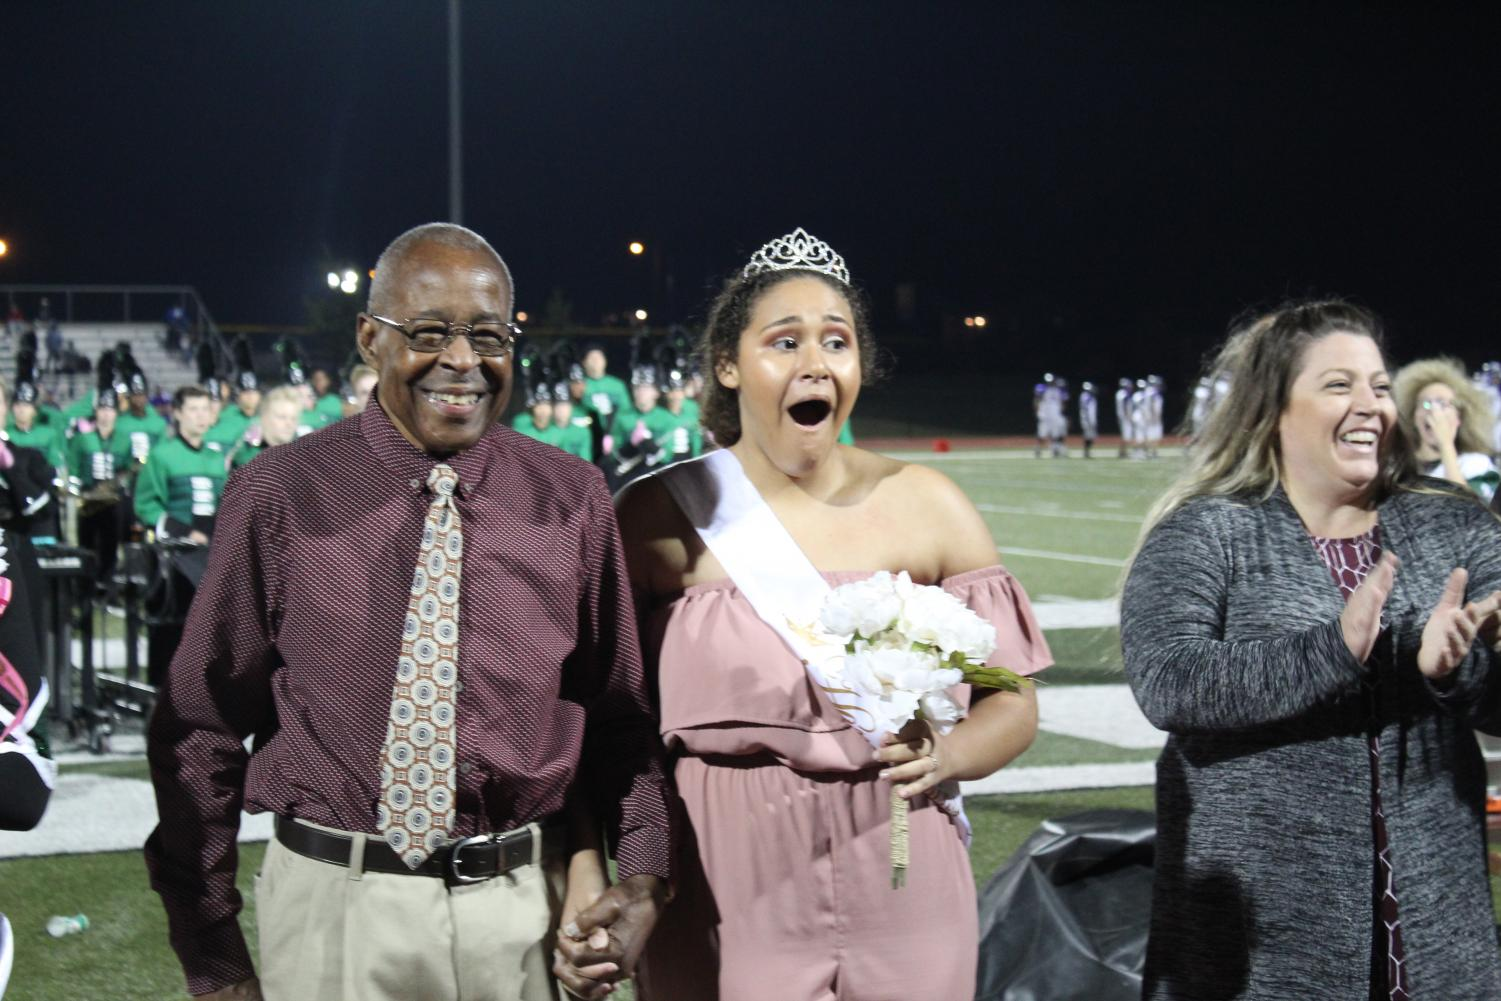 Nadia Maddex reacts after being announced as the 2017 Homecoming Queen winner.